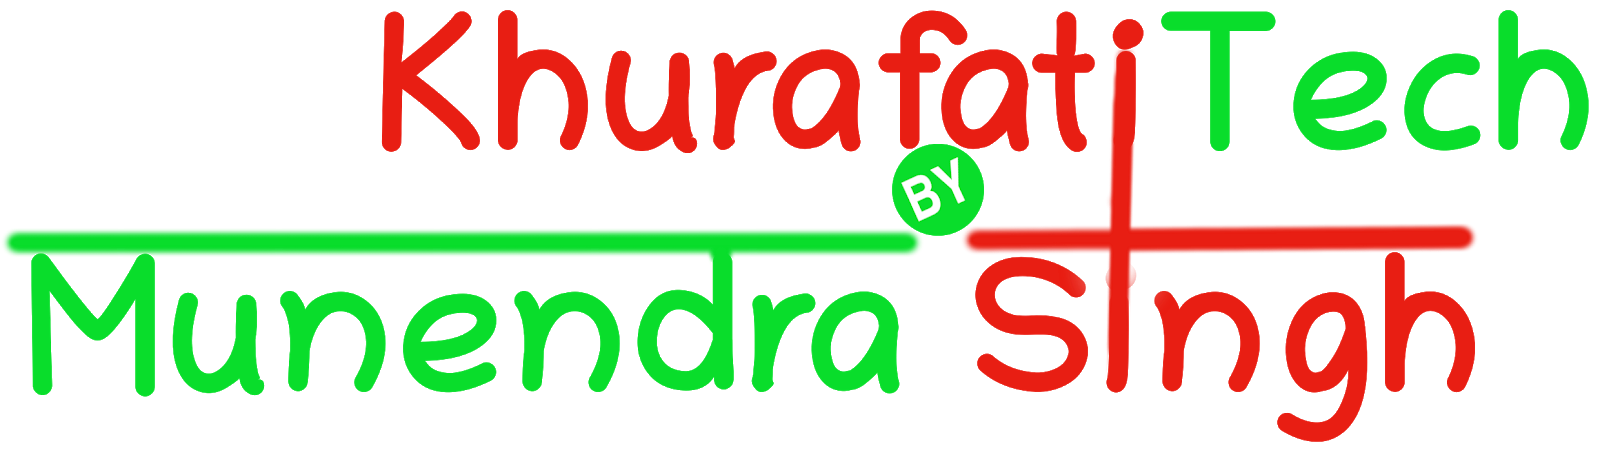 KhurafatiTech by Munendra | Technical, Trusted Education